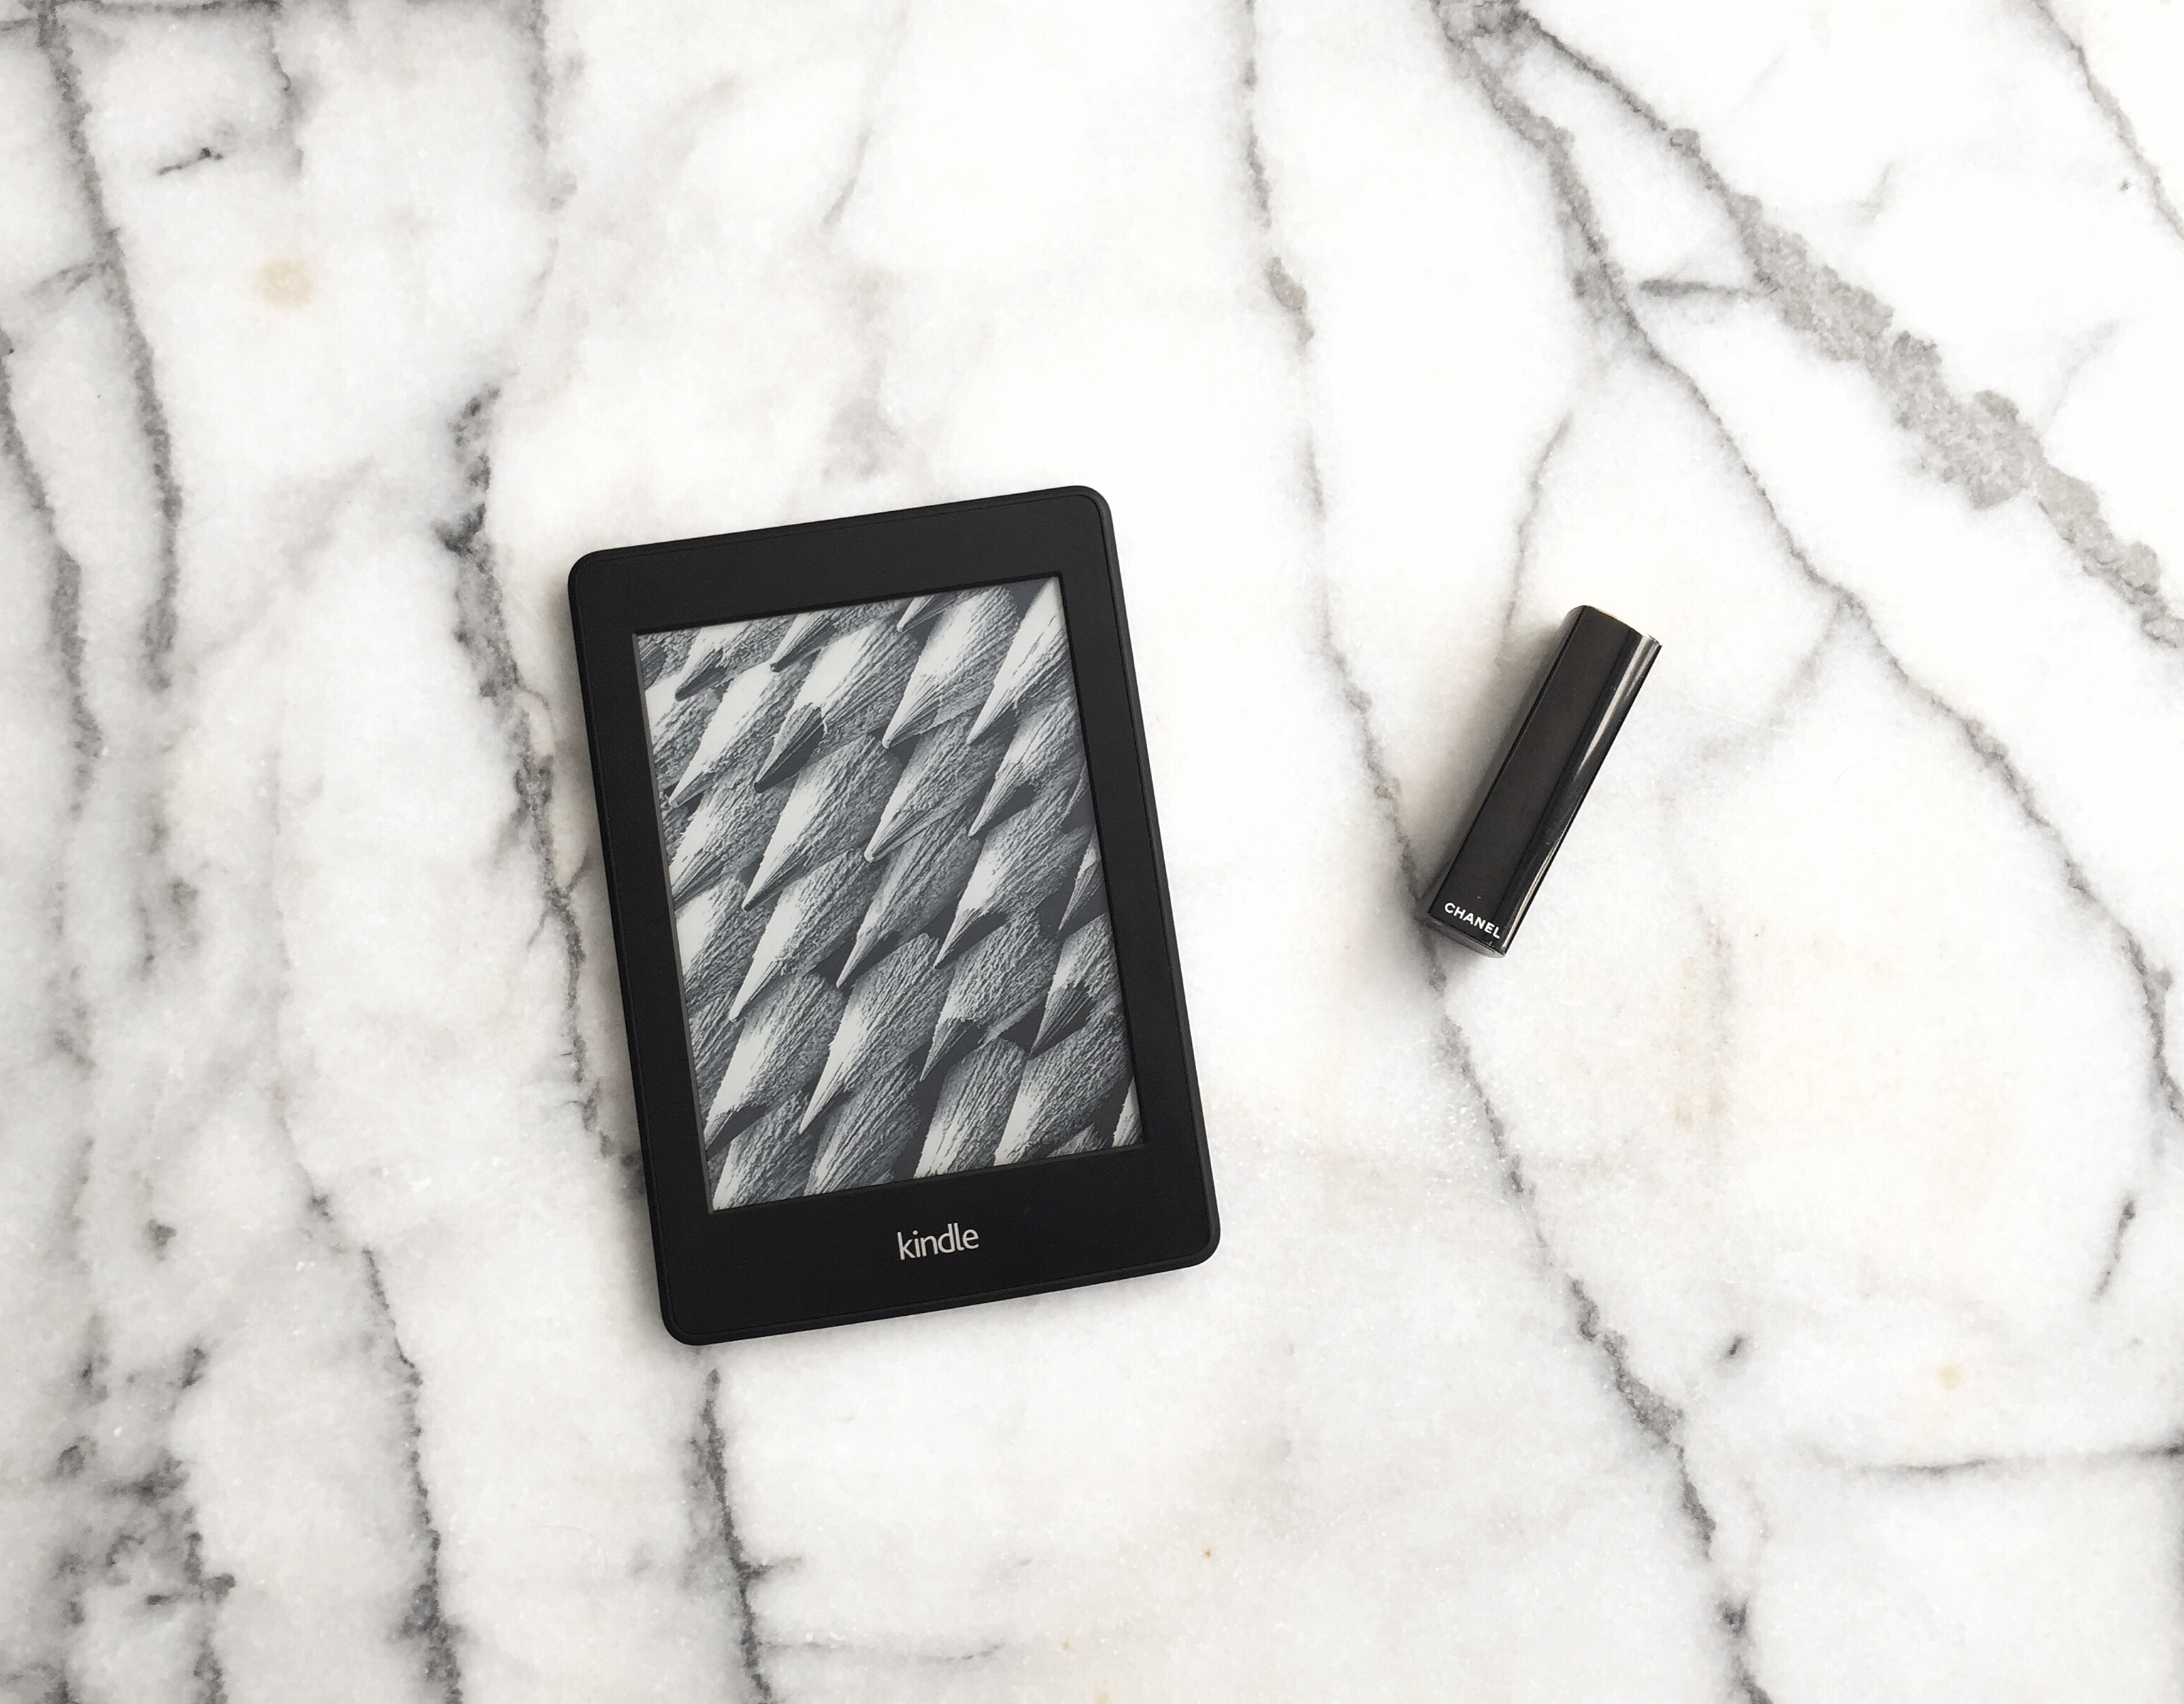 Kindle Deals Chanel Lipstick